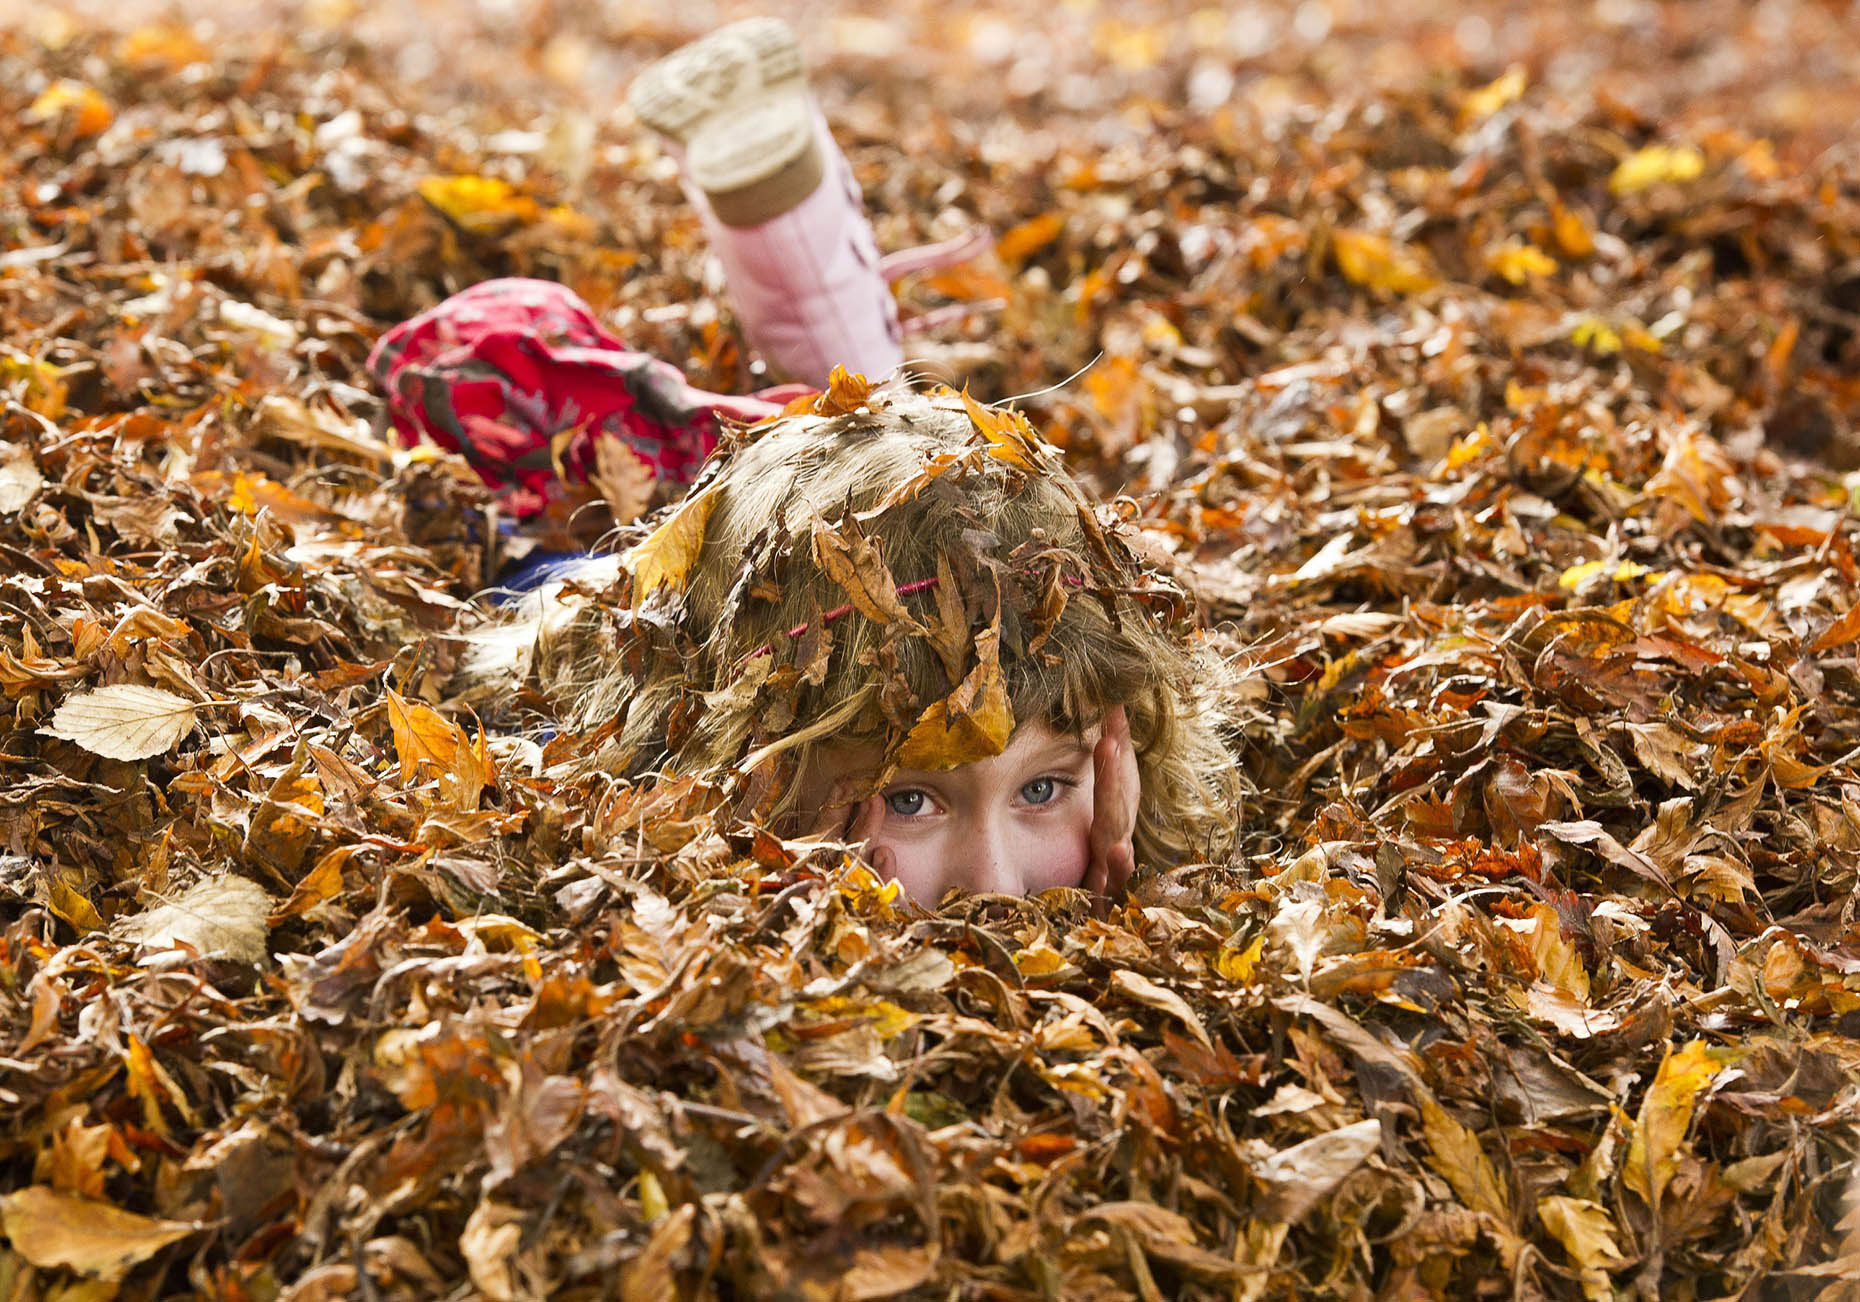 FEA_PhotoReporters_girl-playing-in-leaves-fall-frolic_Christchurch_NZ